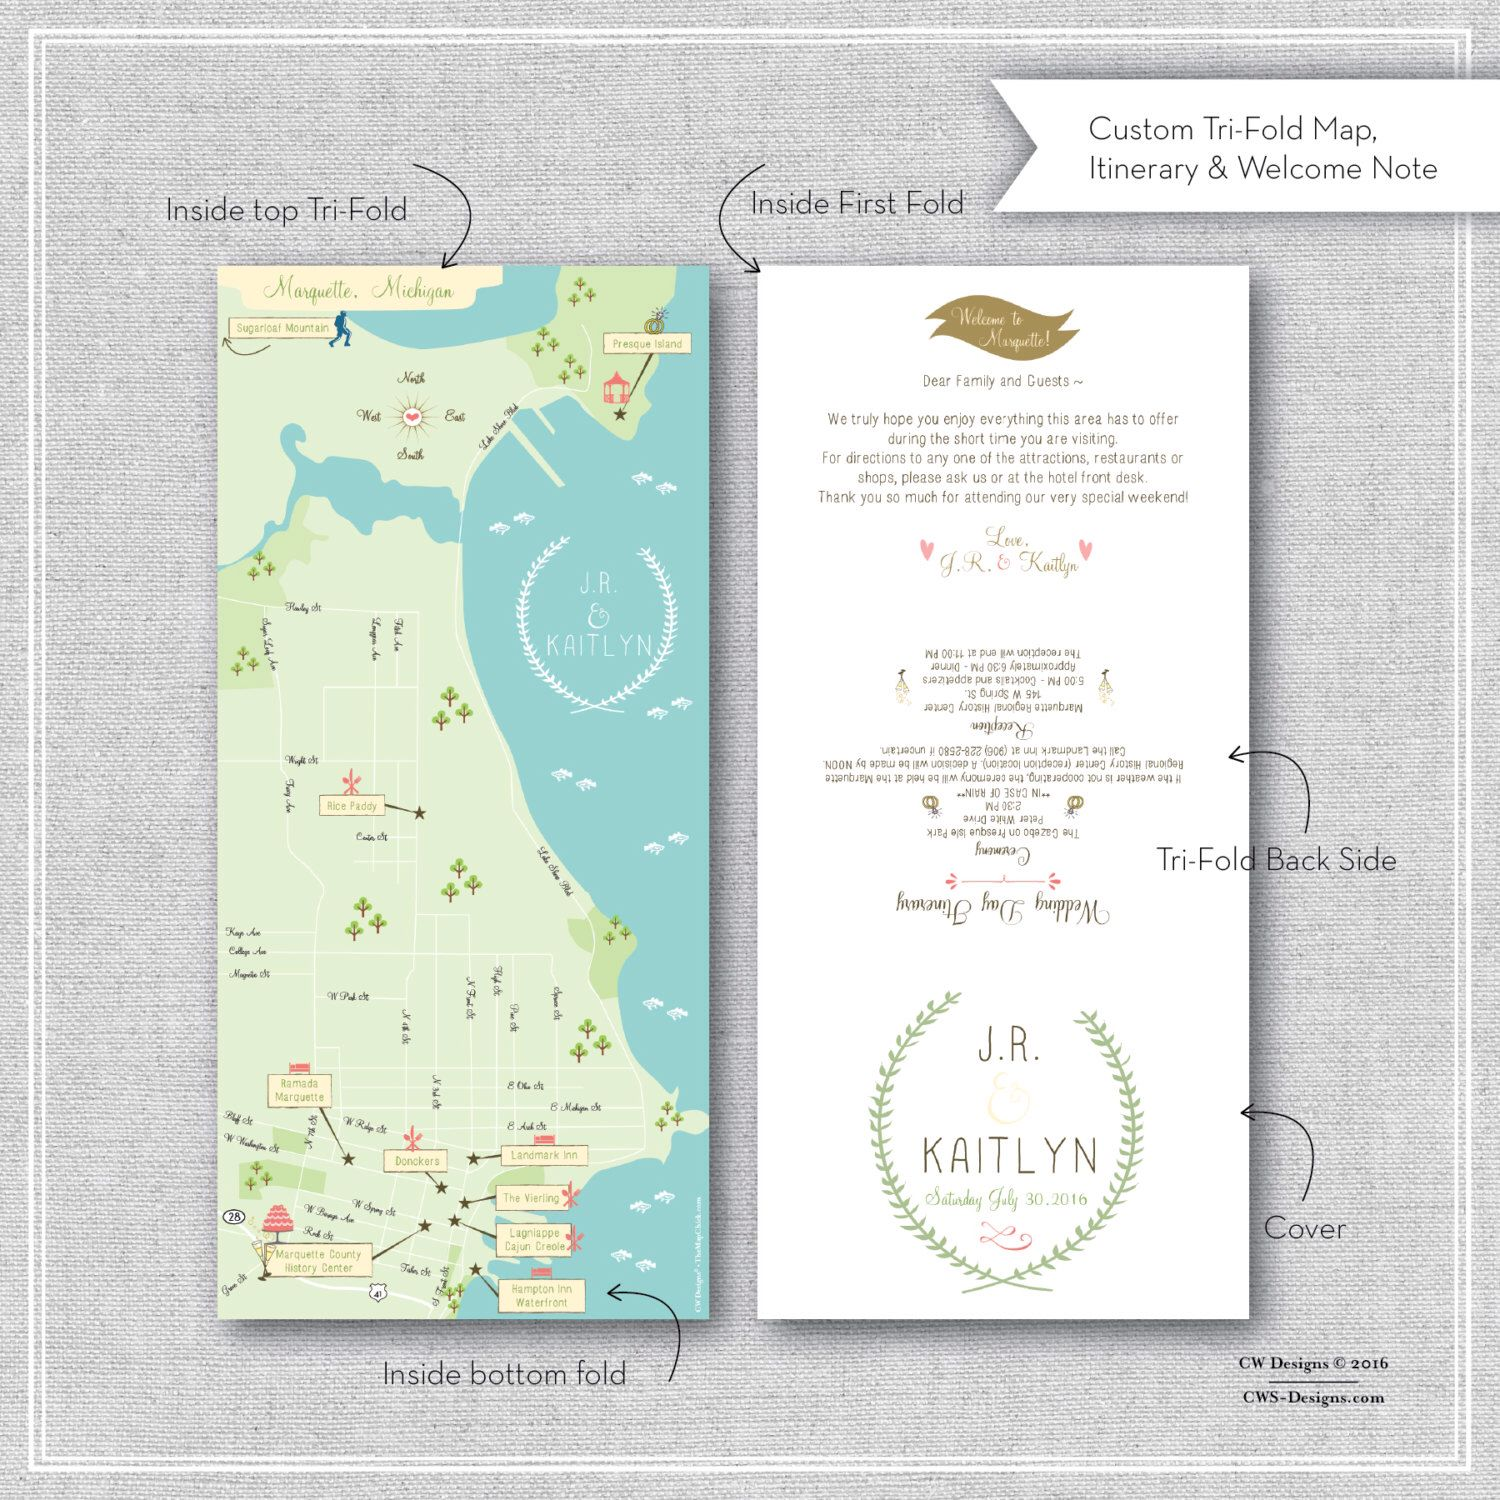 listing for cait custom wedding map with itinerary tri fold new orleans la wedding pinterest unique invitations friend wedding and invitation